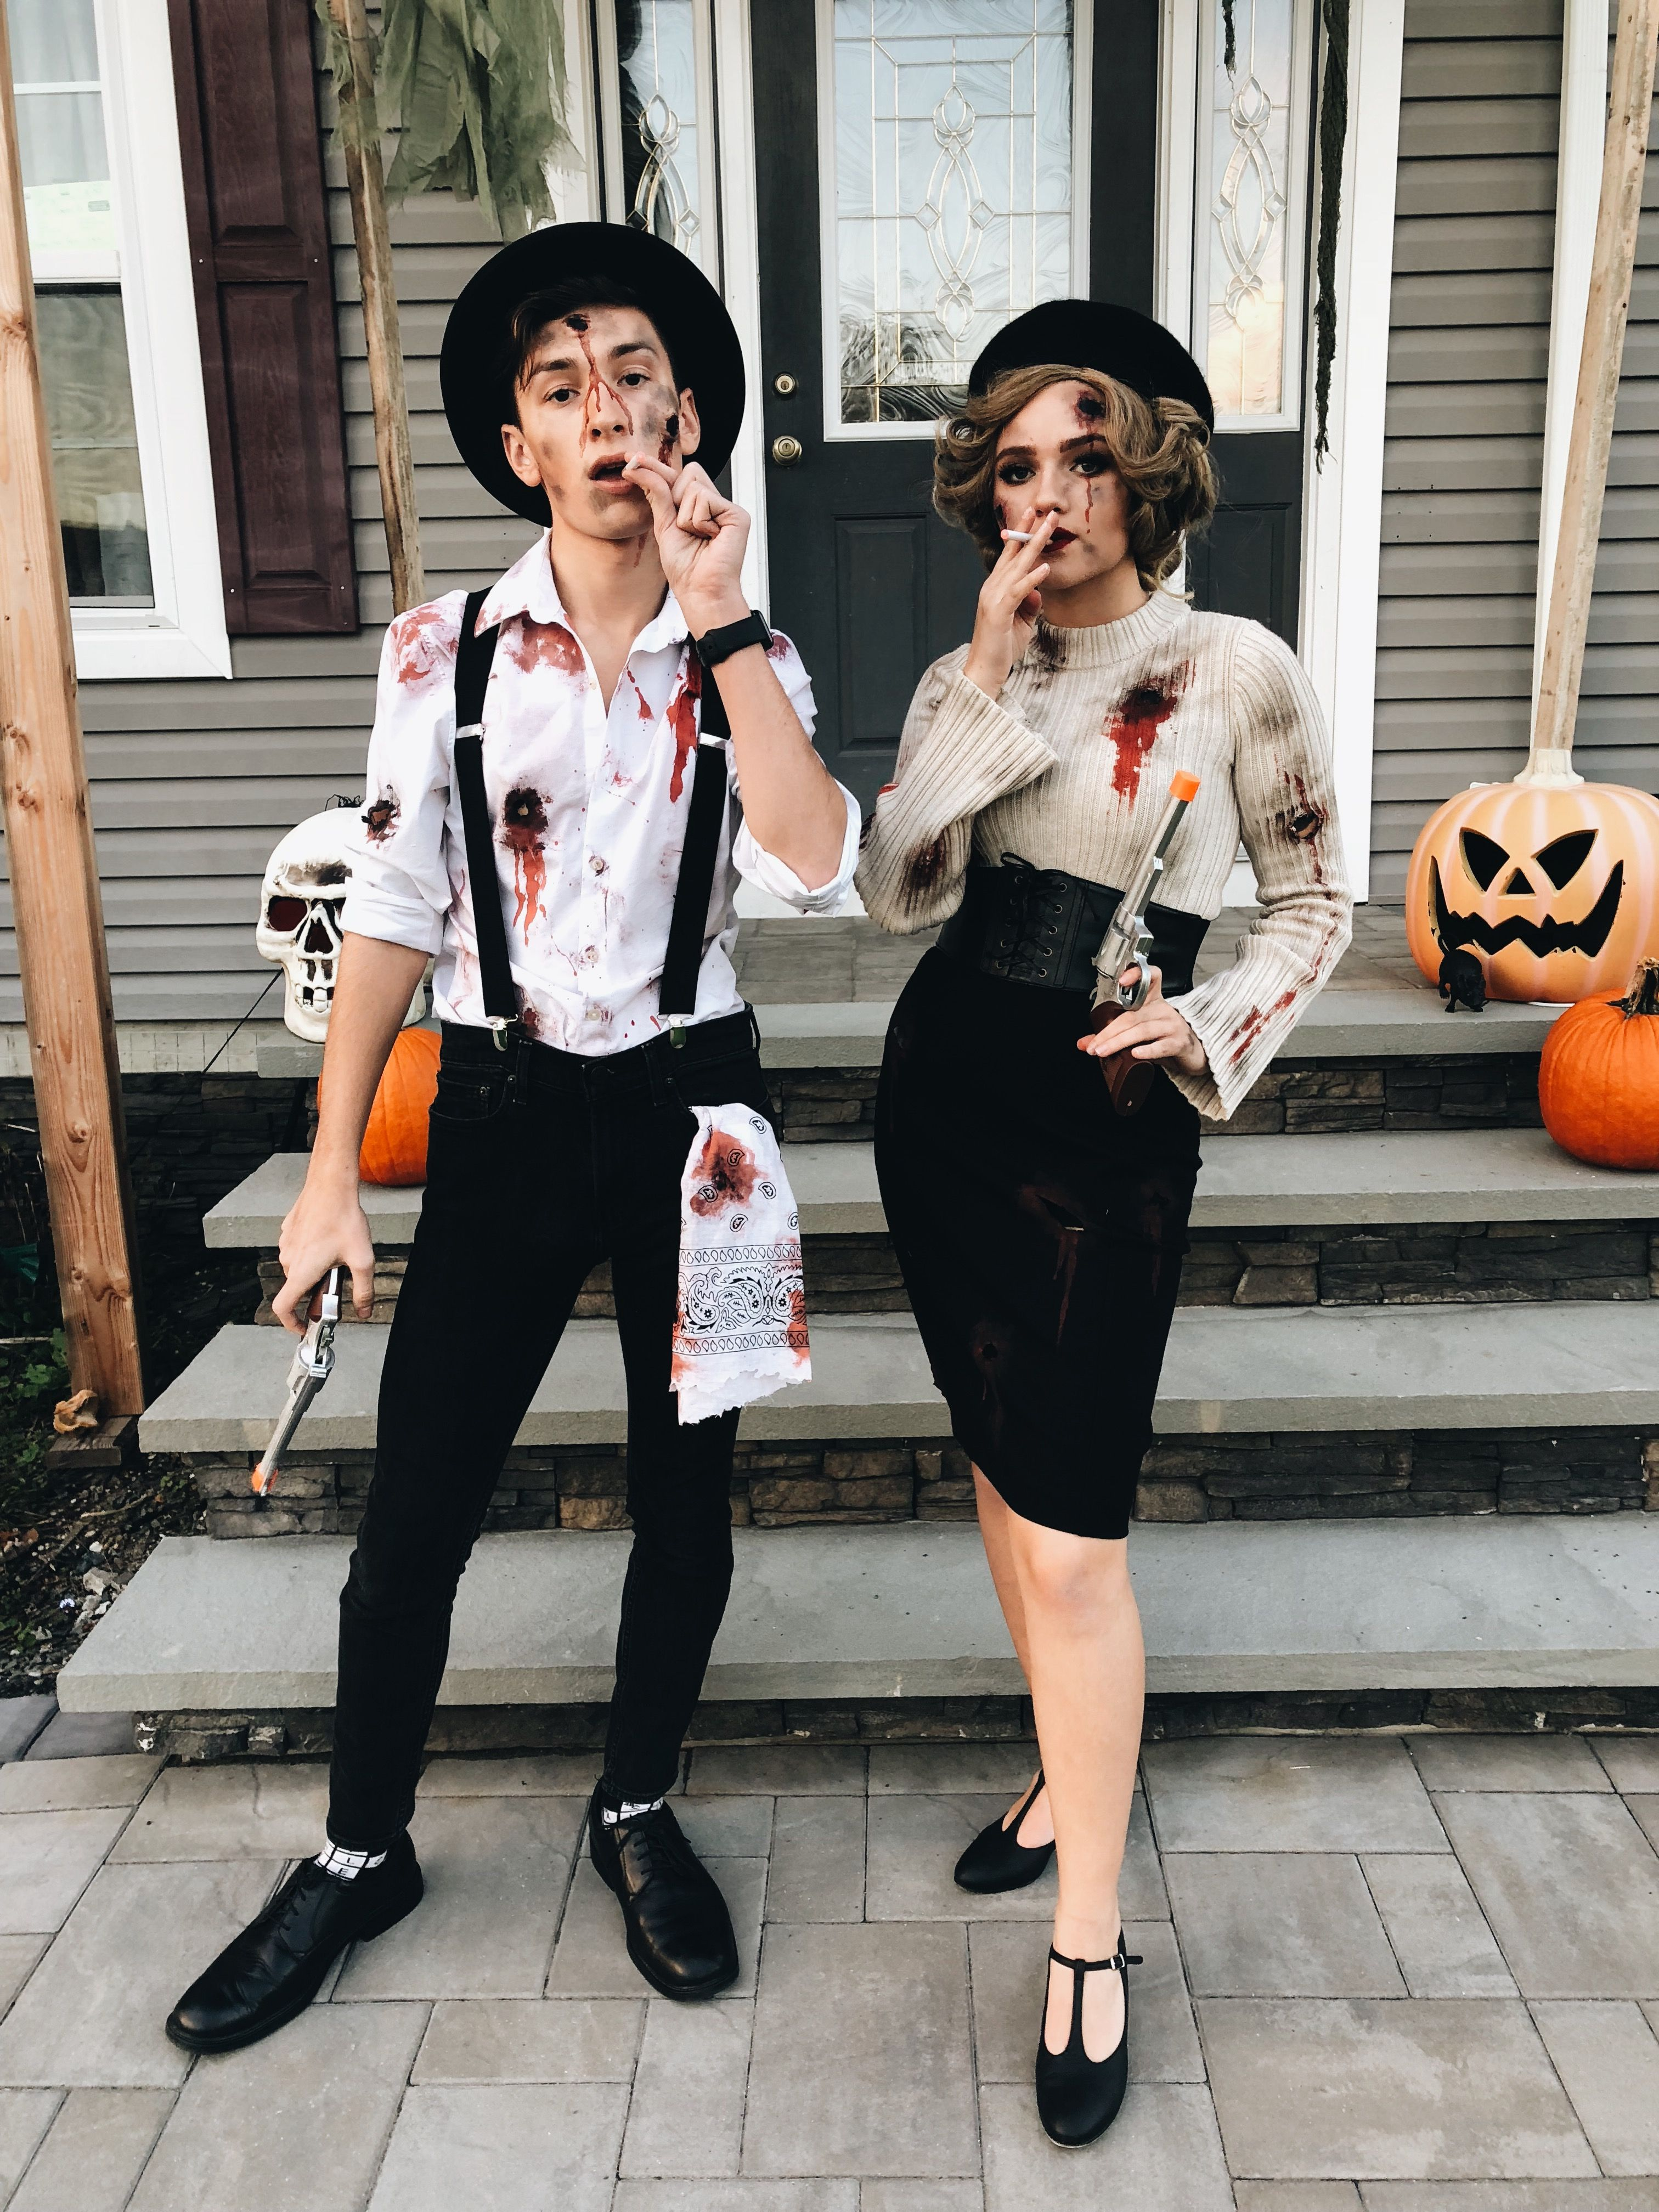 dead Bonnie and Clyde Halloween costume #couplehalloweencostumes